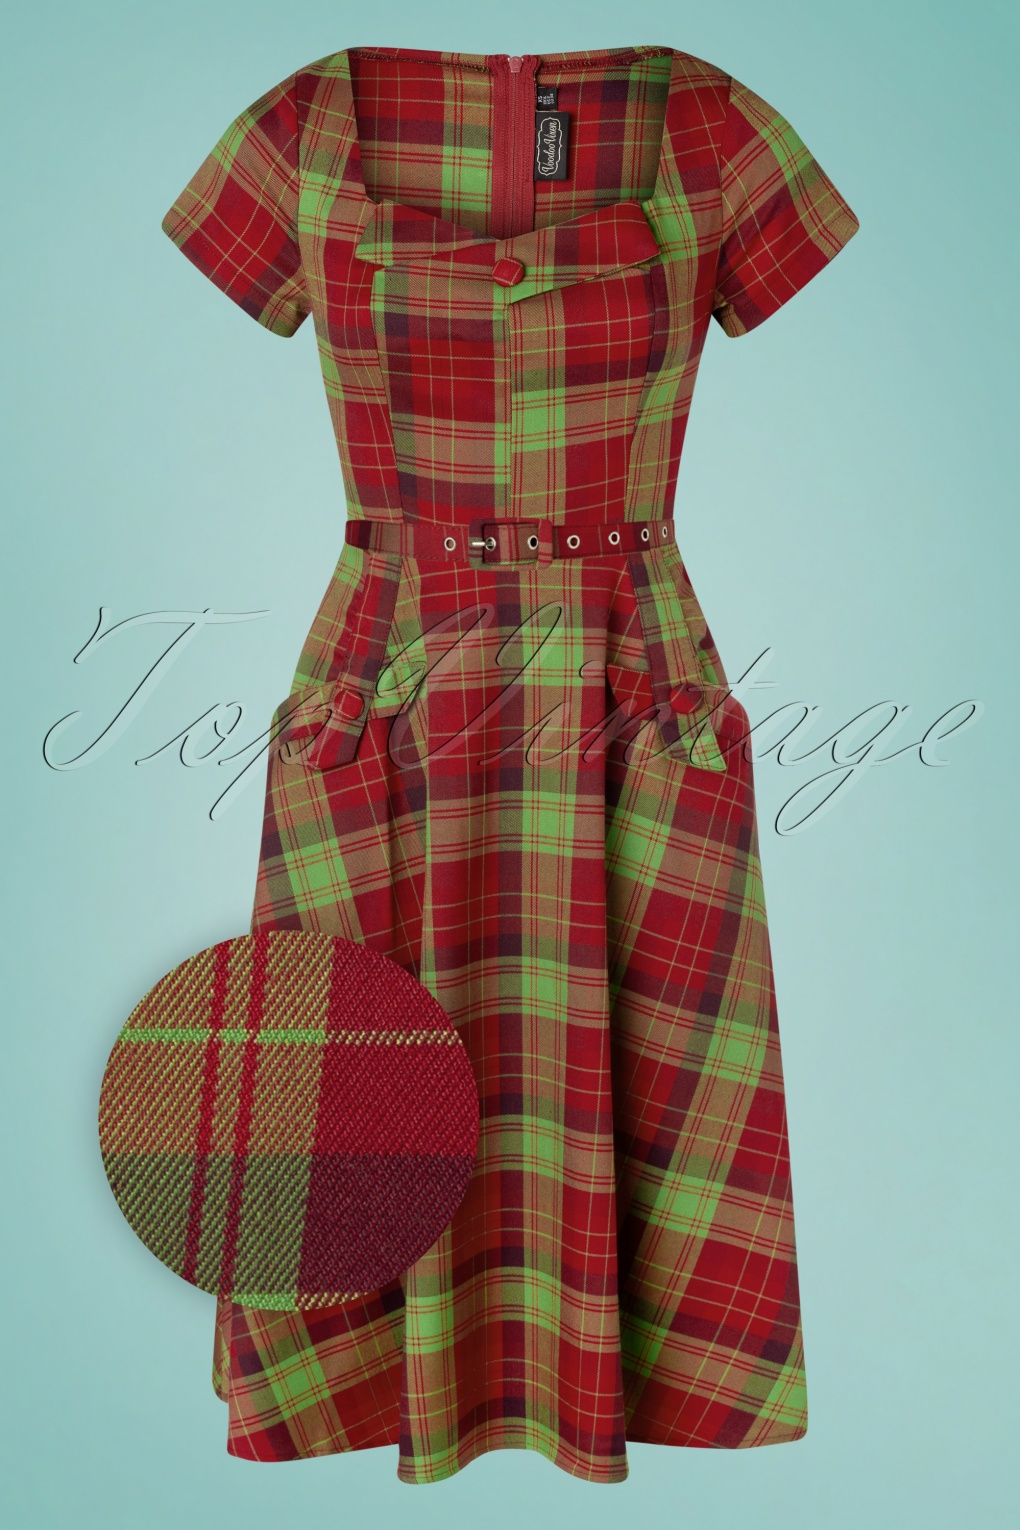 Pin Up Dresses | Pinup Clothing & Fashion 50s Marine Plaid Swing Dress in Burgundy and Green £59.71 AT vintagedancer.com